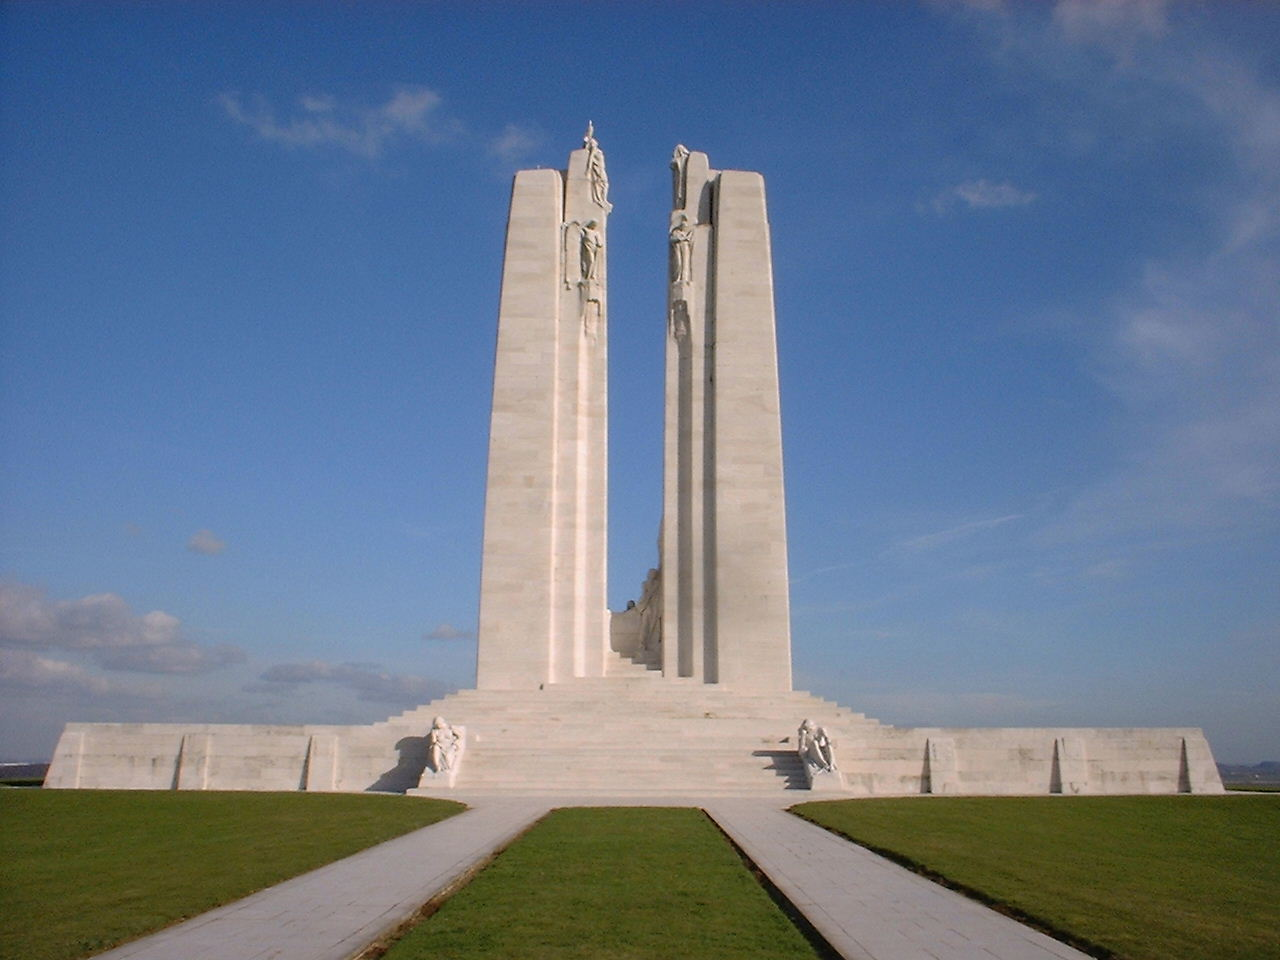 Monument commémoratif du Canada à Vimy, France